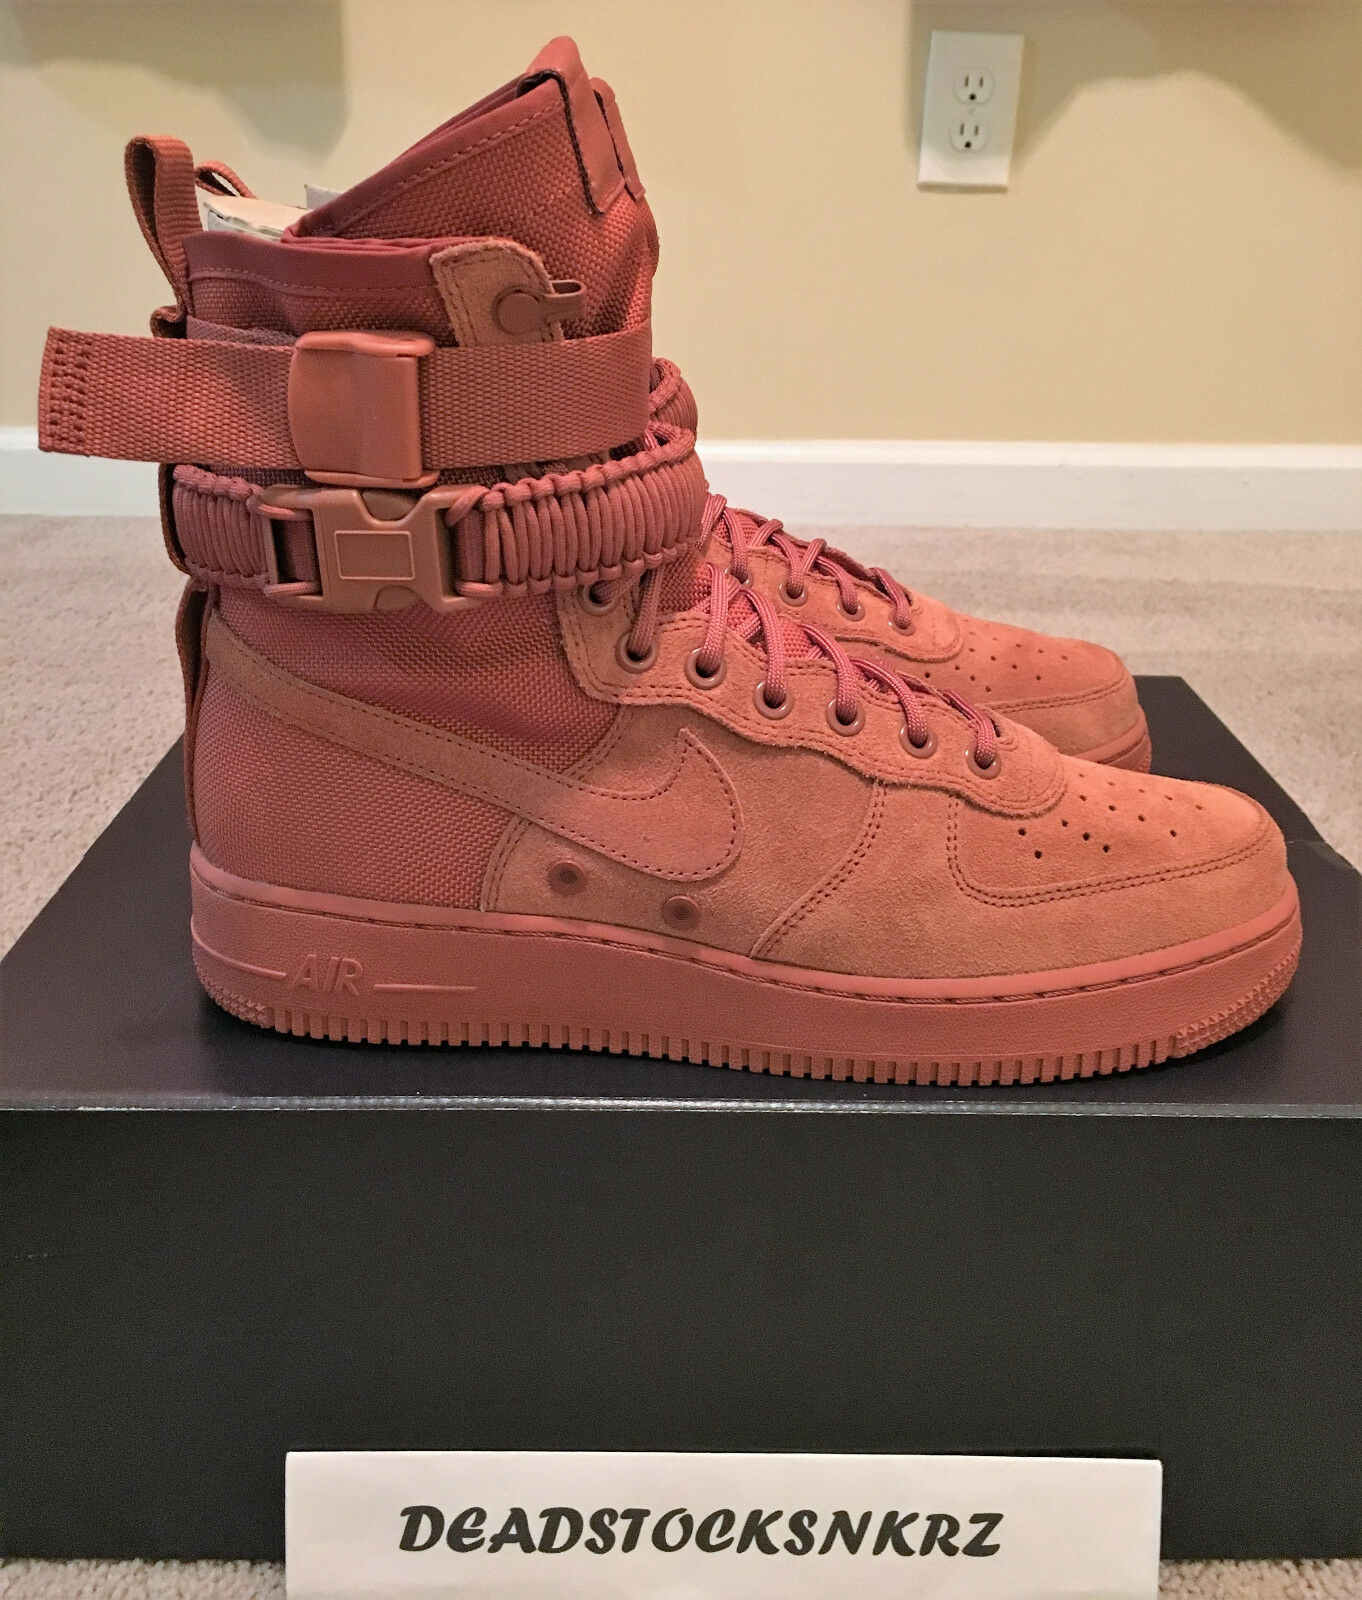 Nike SF AF1 Special Field Air Force 1 Dusty Peach 864024 204 Men's Sz 9.5 & 10.5